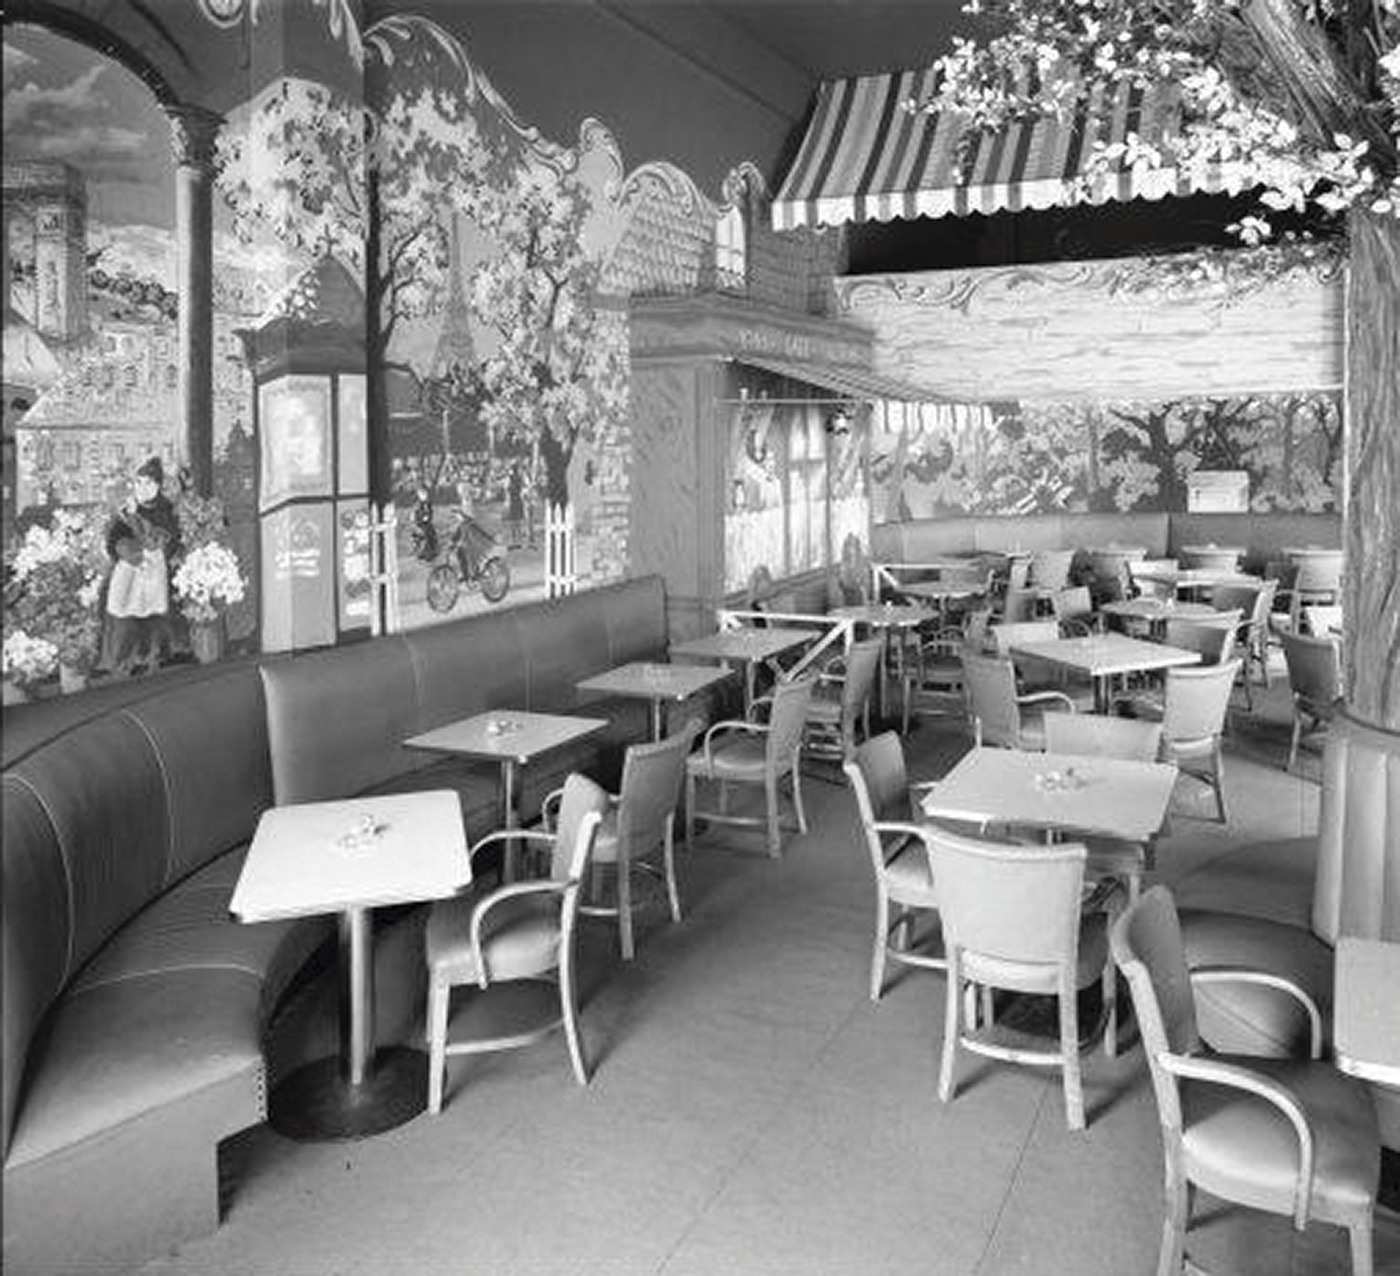 The gay-friendly Beaux Arts Lounge opened in downtown Louisville in 1947 and was among the first such bars in Kentucky. Image courtesy of the Williams-Nichols Collection, University of Louisville.